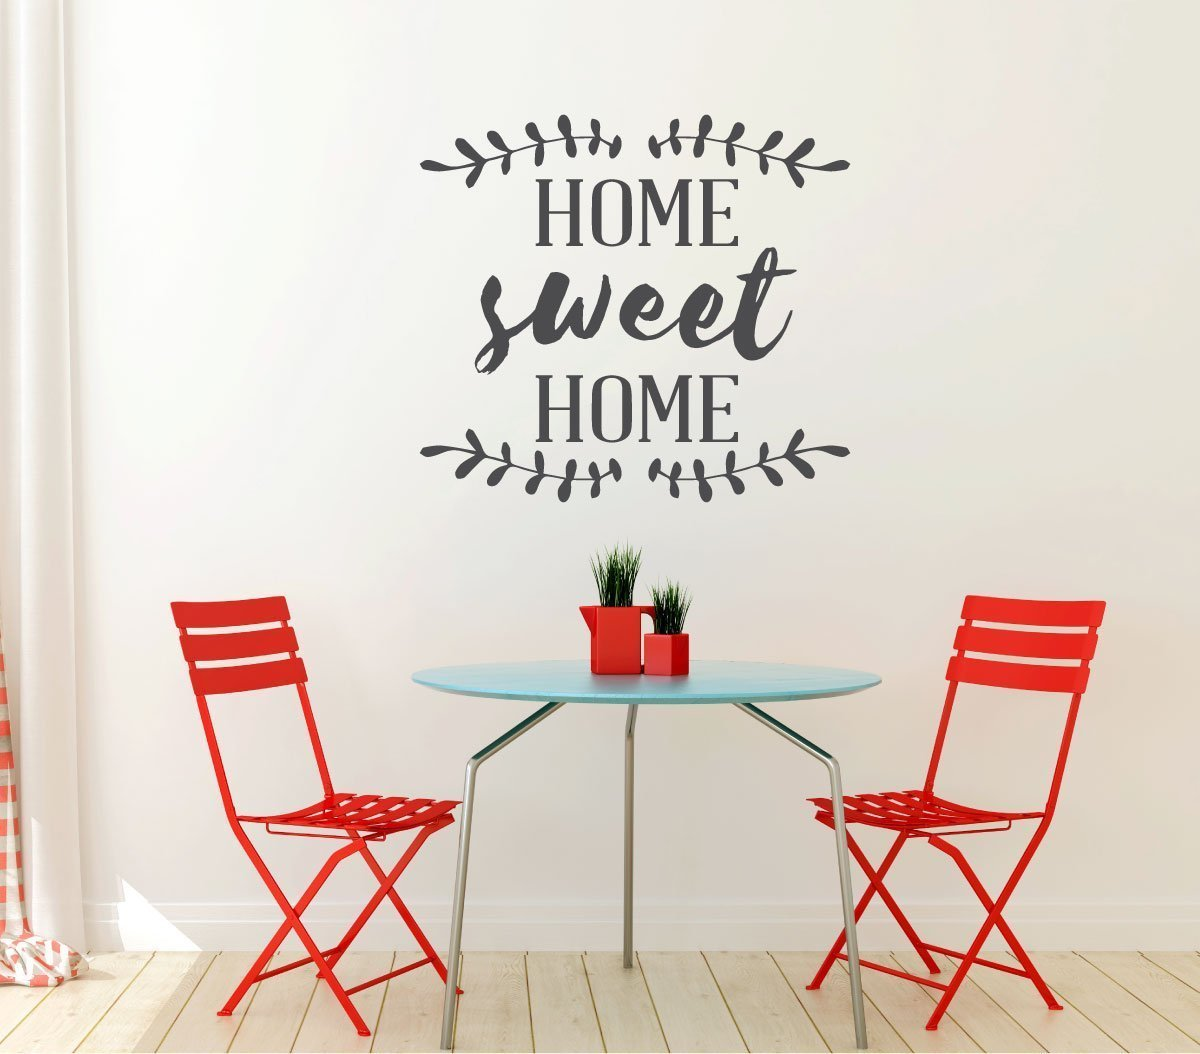 Home Sweet Home Vinyl Wall Art Decal For Living Dining, Family Room, or Entryway Decor